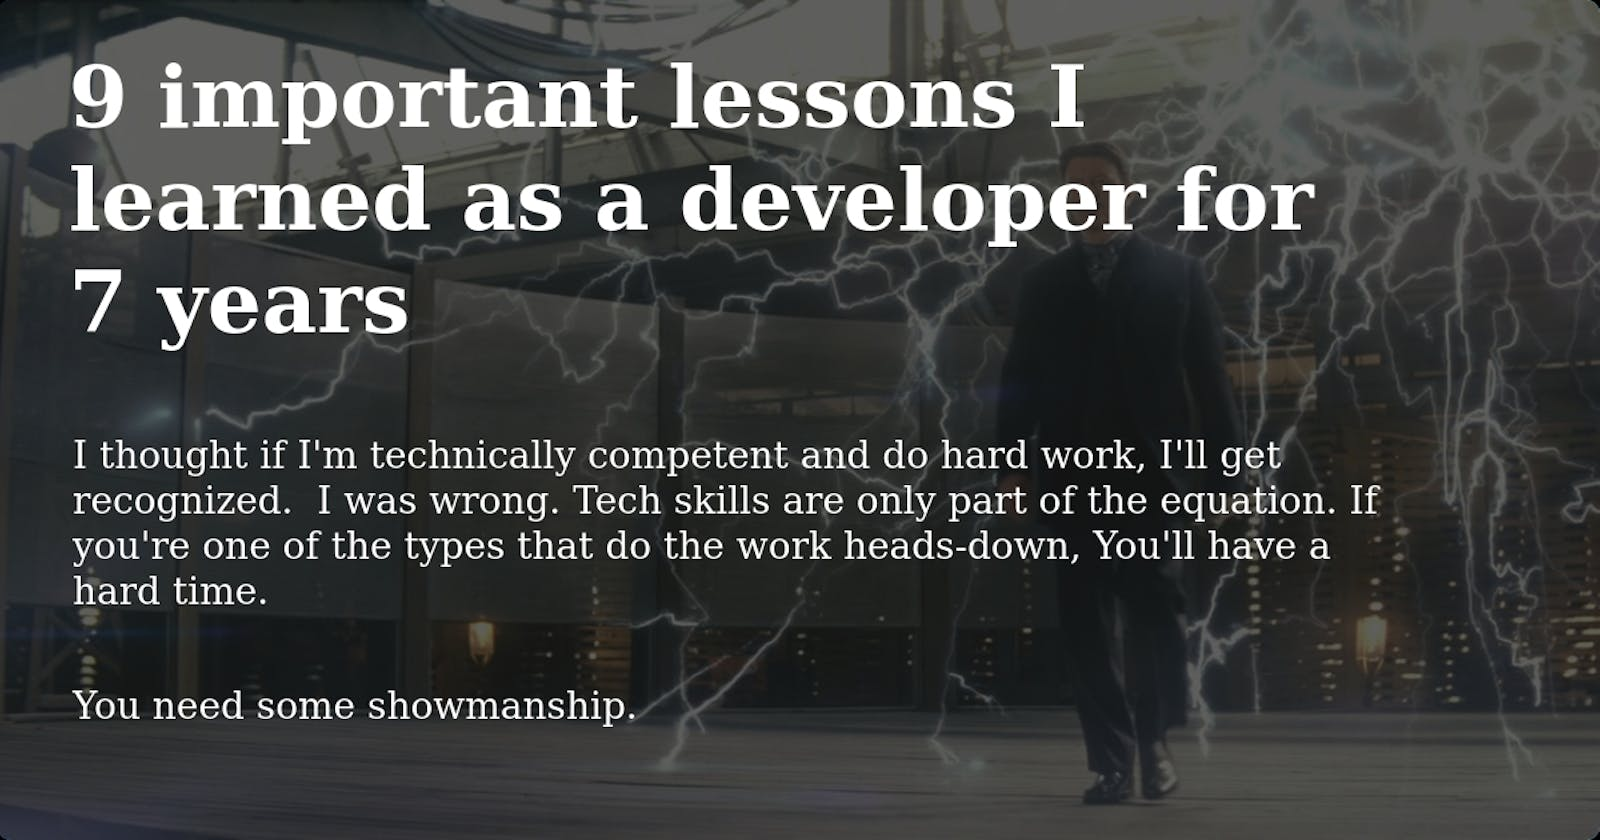 9 important lessons I learned working as a developer for 7 years